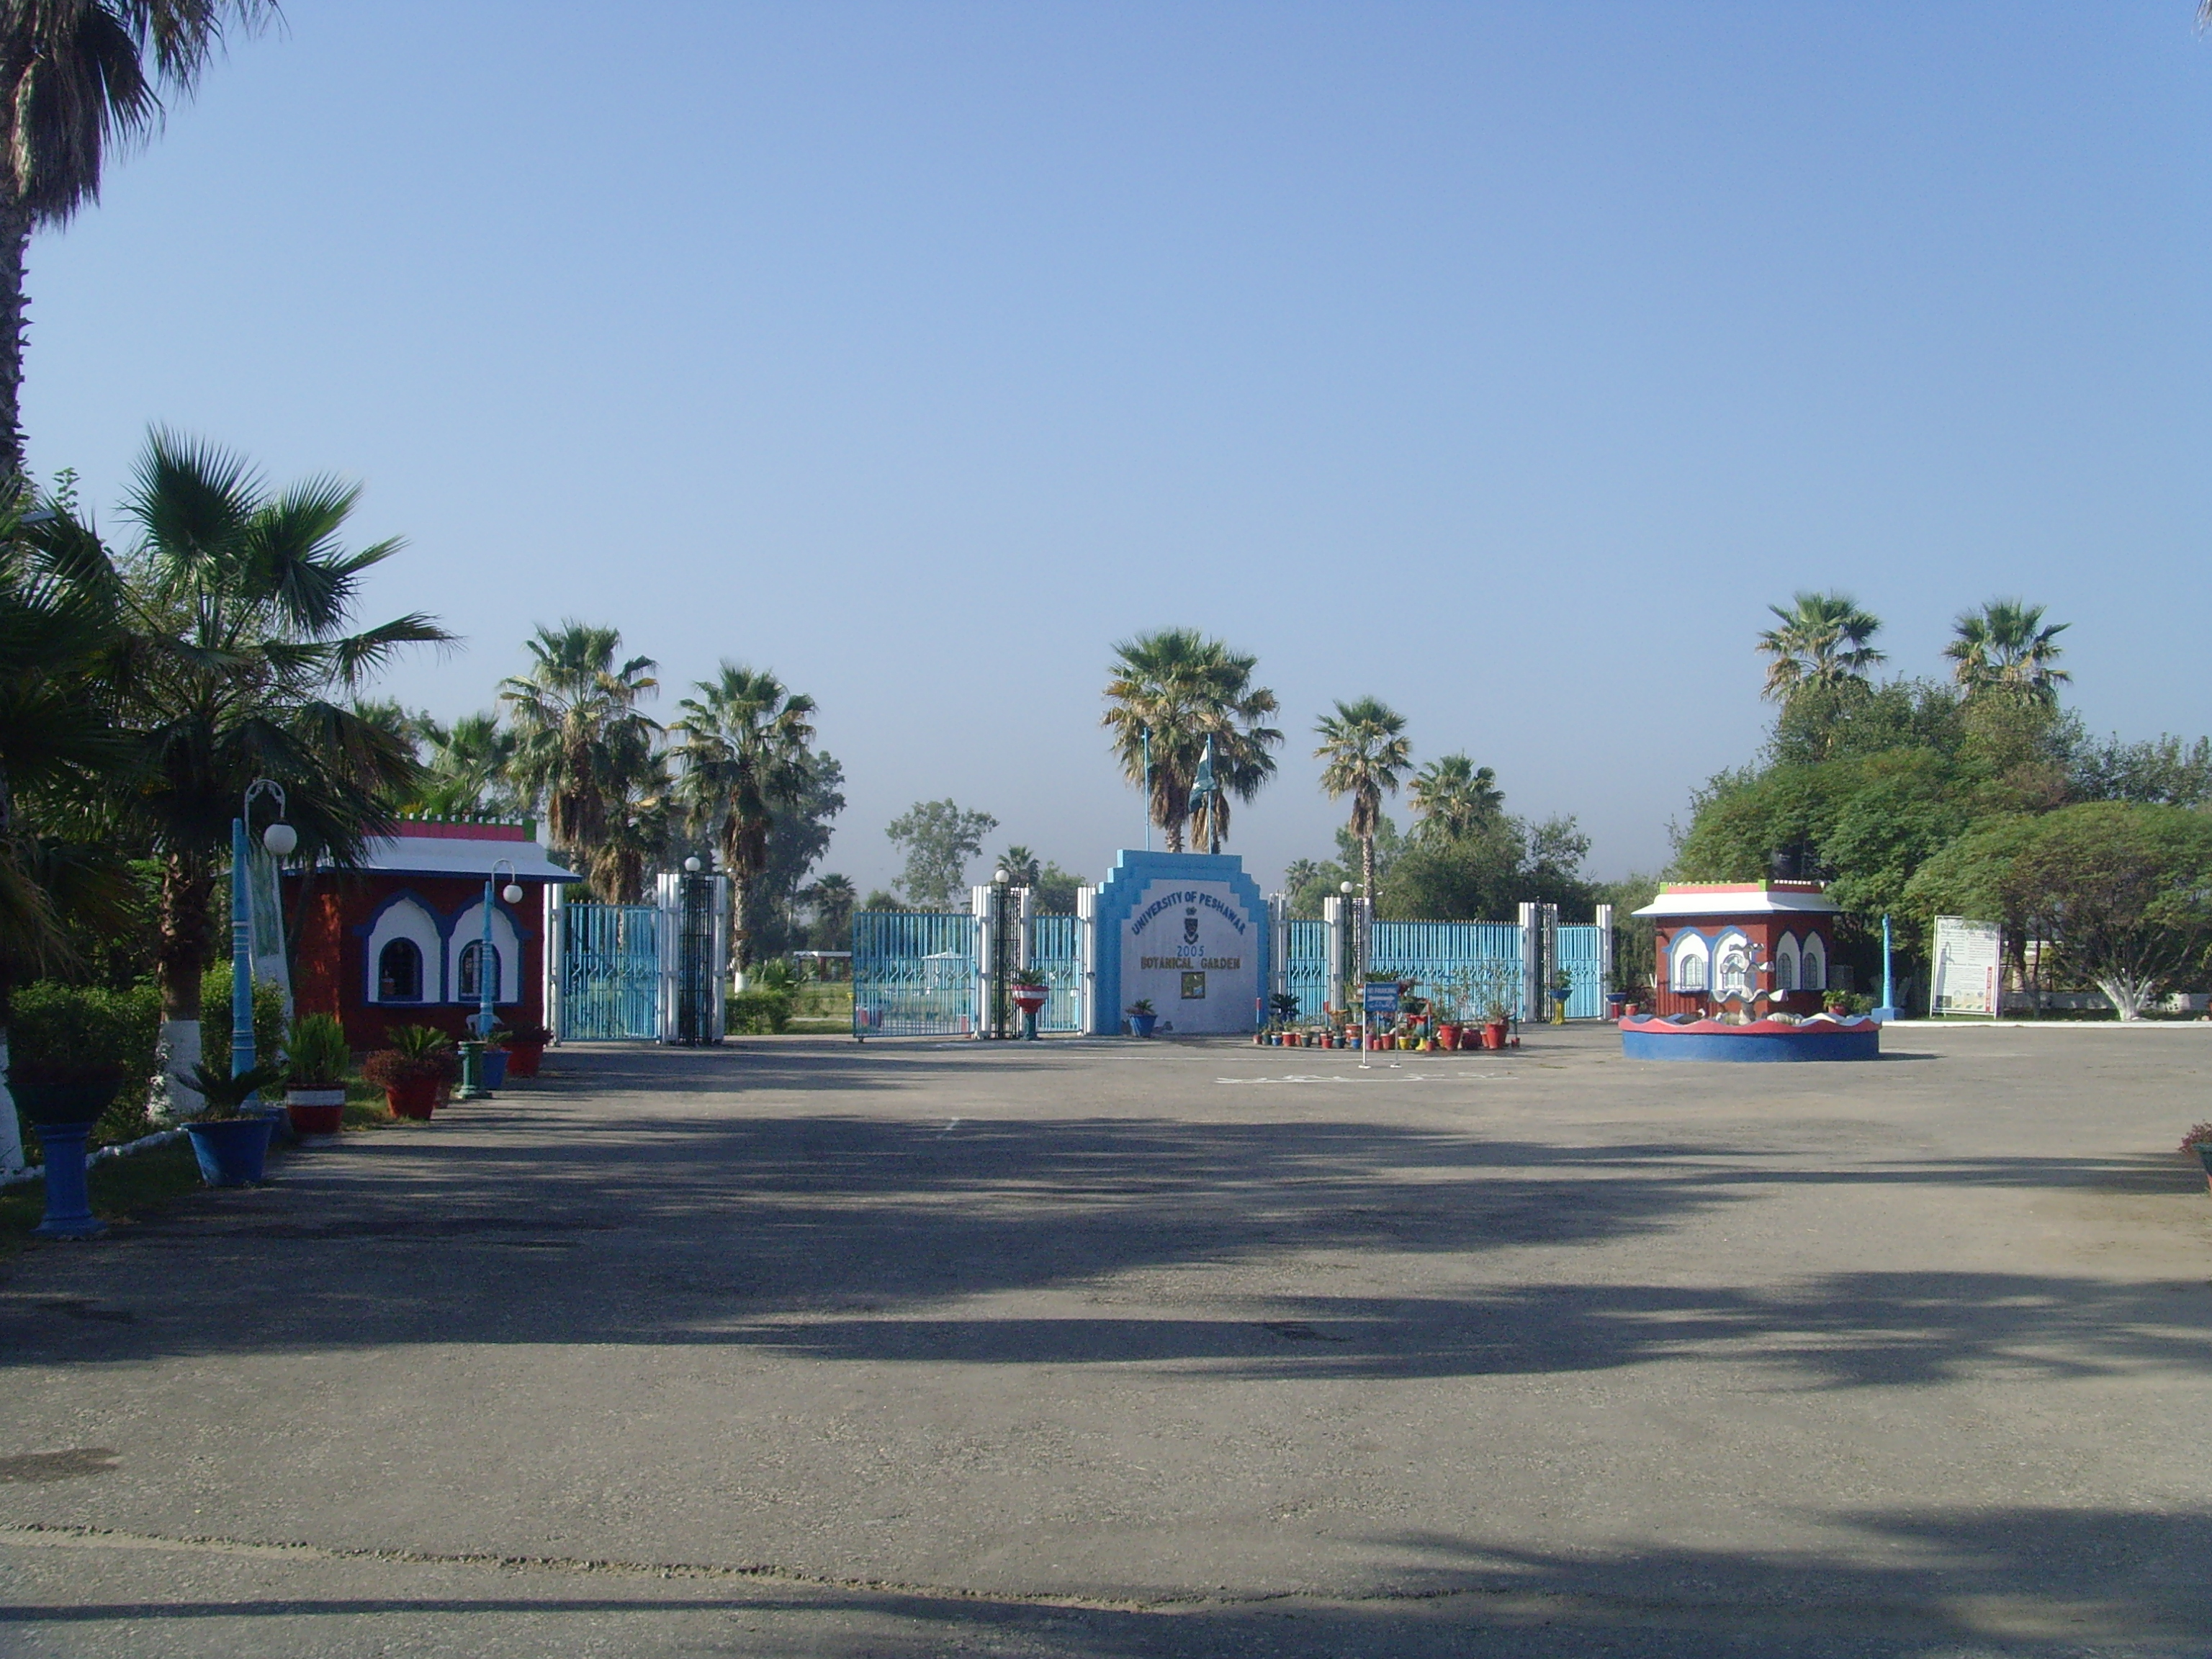 Main Entrance of Botanical Garden